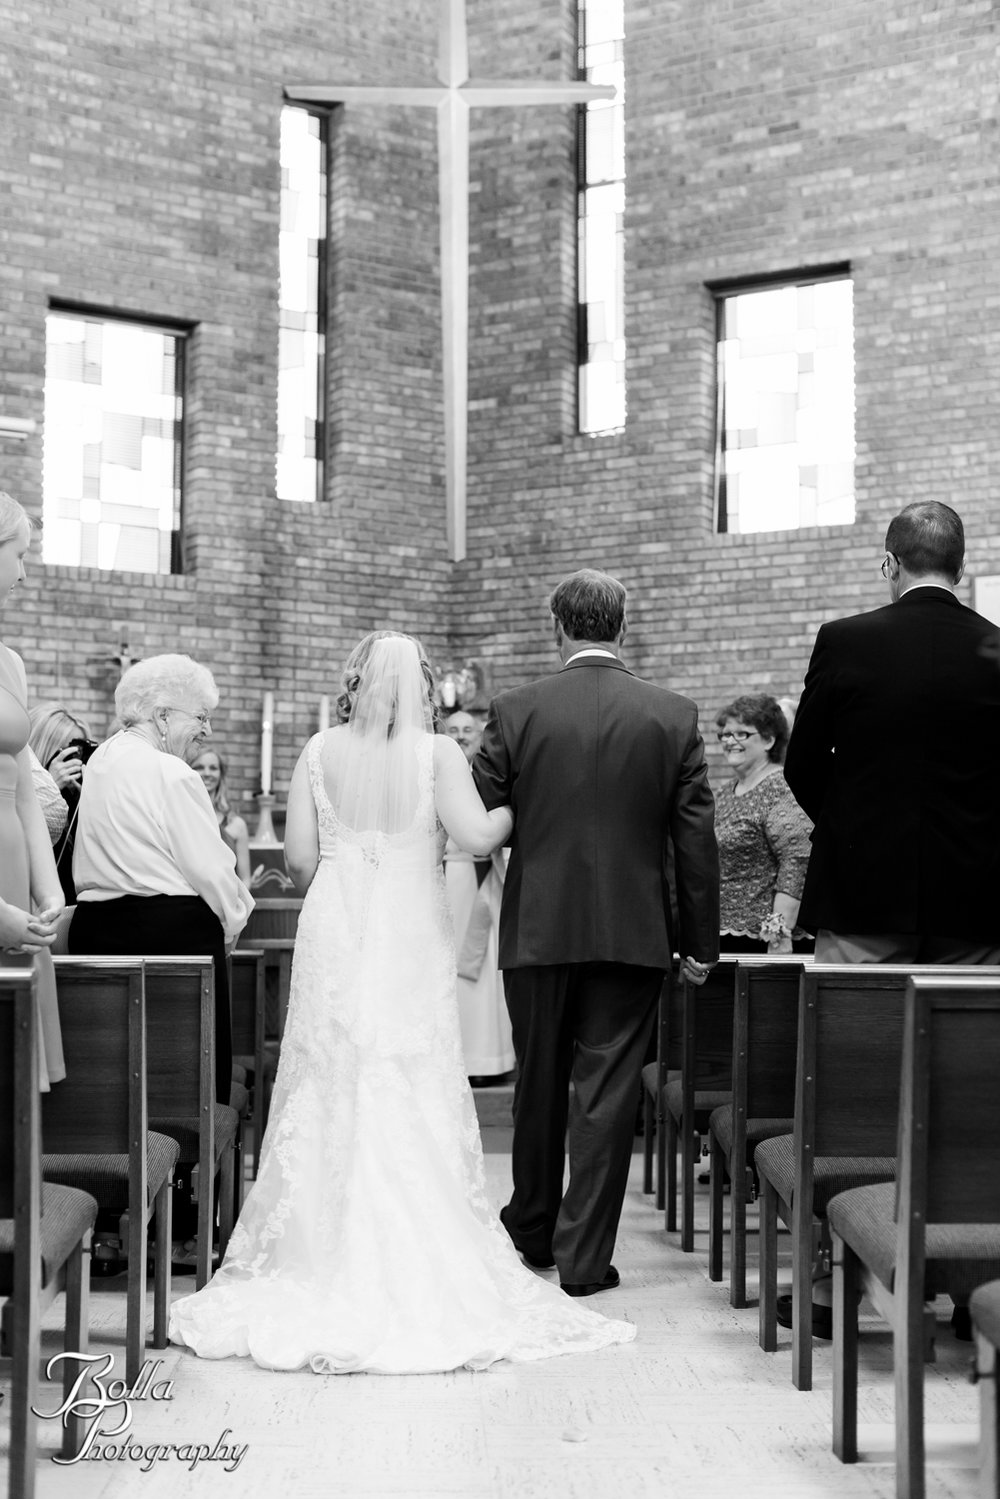 Bolla_Photography_St_Louis_wedding_photographer_Wildey_Theater_Edwardsville-0153.jpg